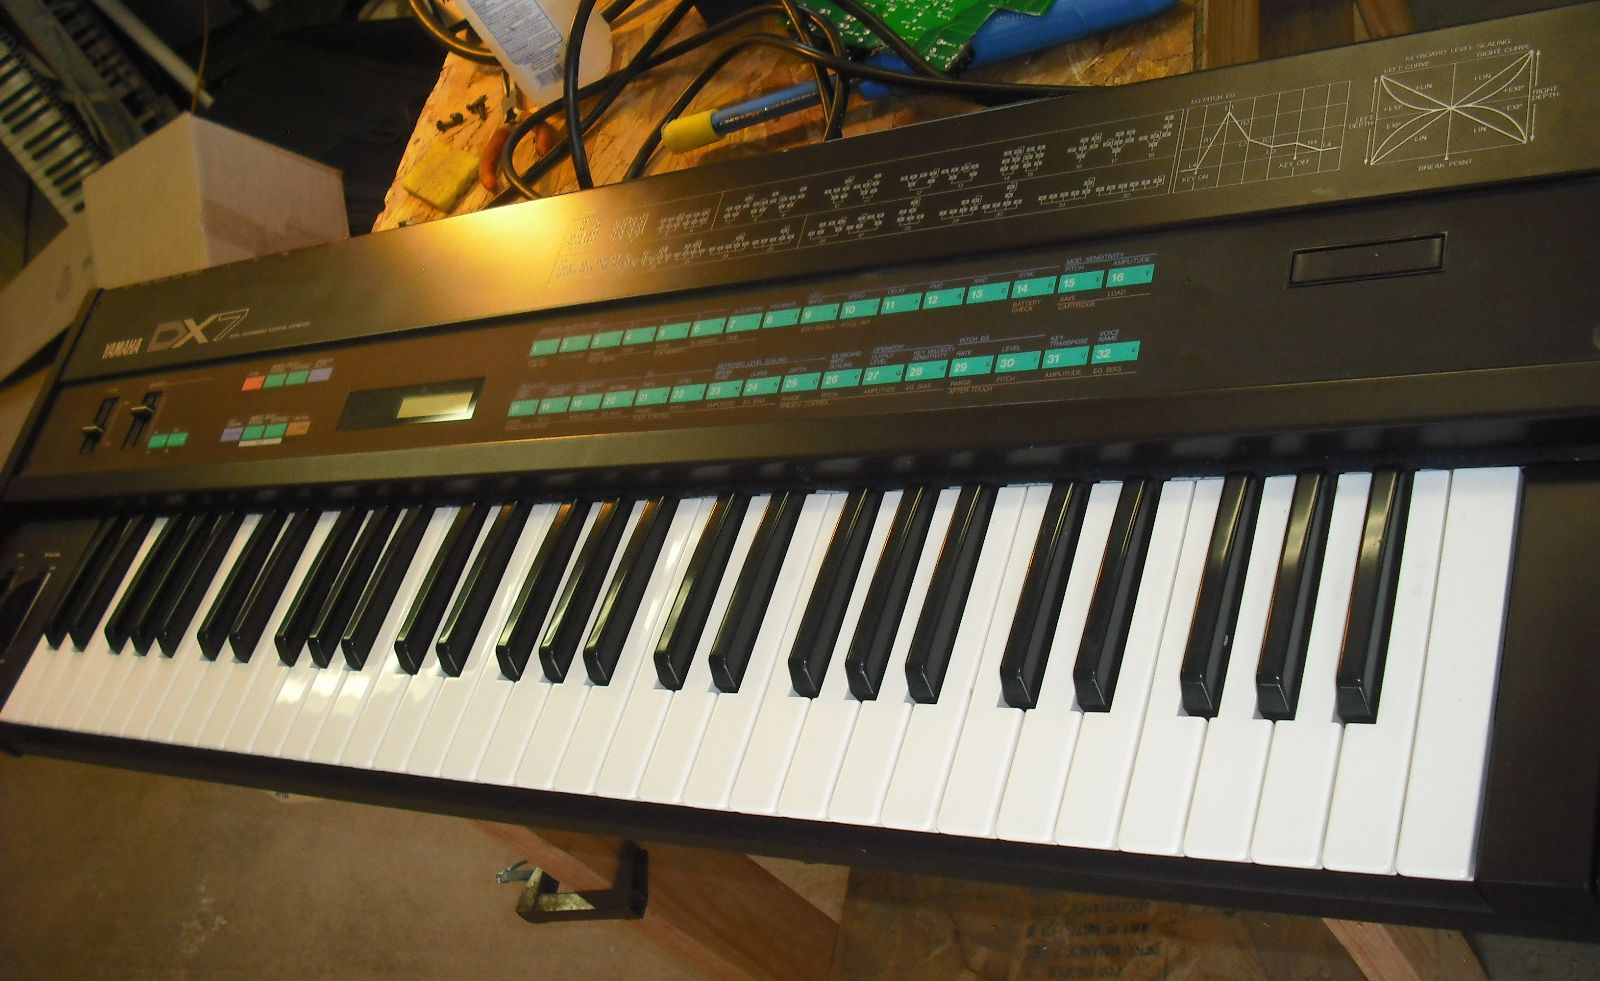 fixingelectronics: Yamaha DX7 repair : no sound, new battery